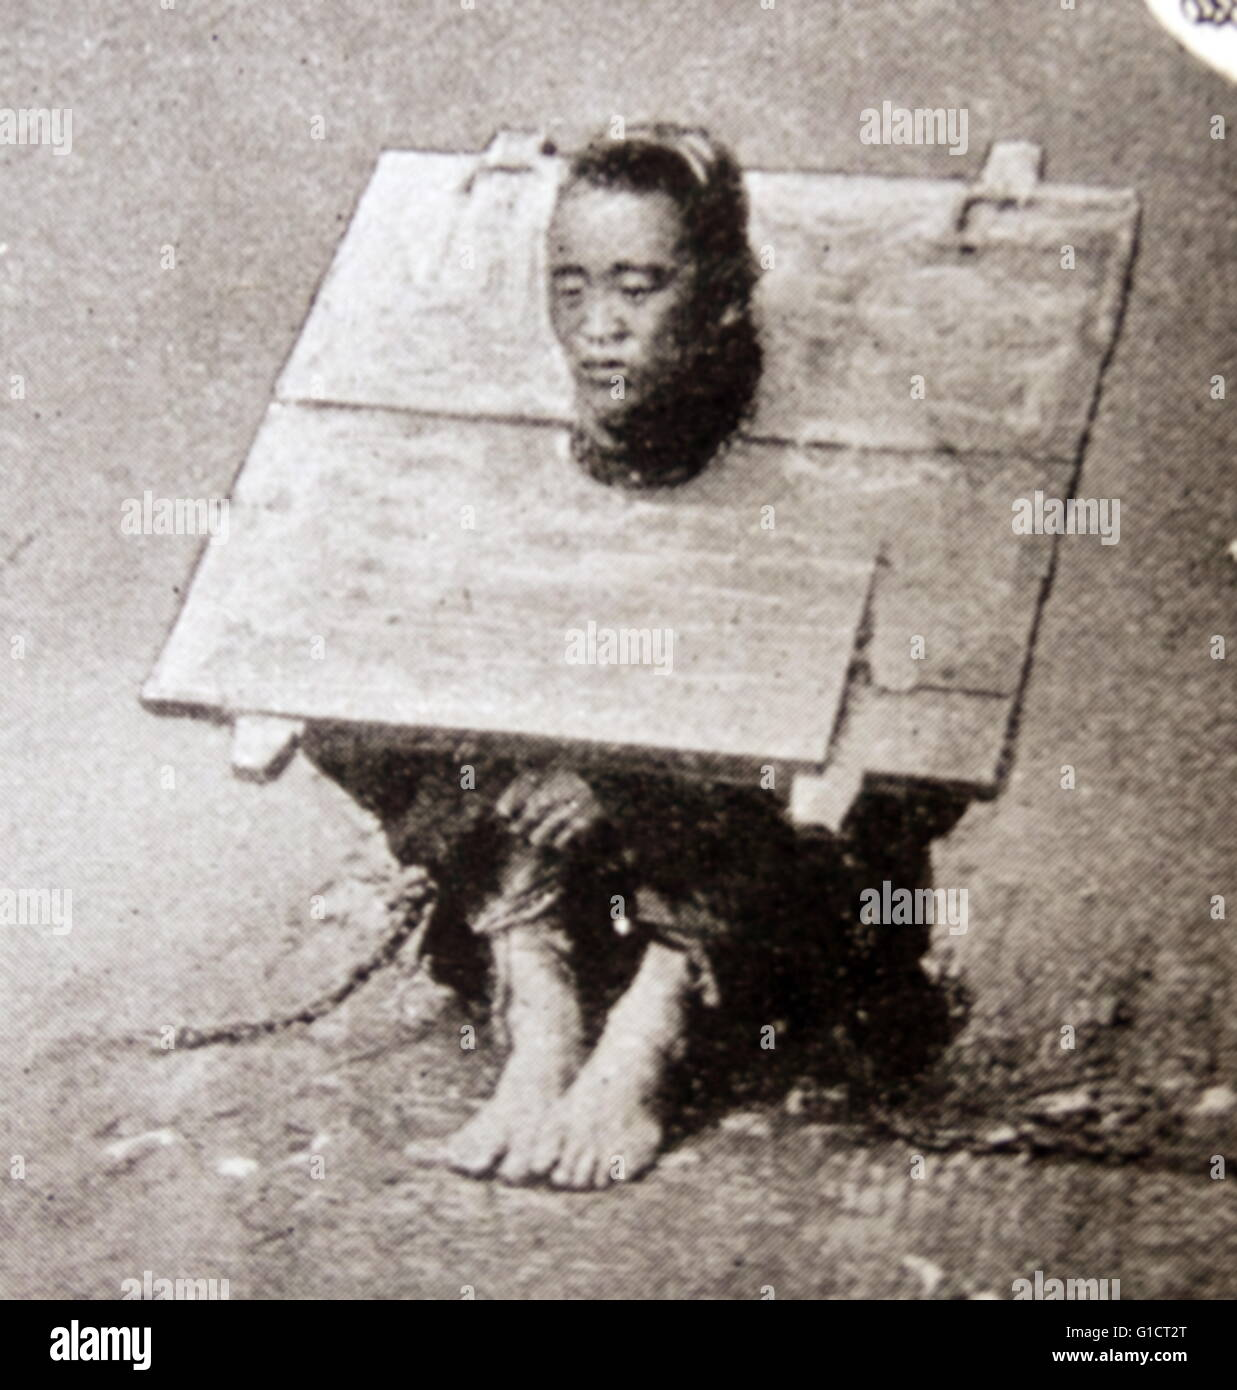 Chinese criminal or bond slave in a wooden yoke to secure his captivity circa 1880 - Stock Image